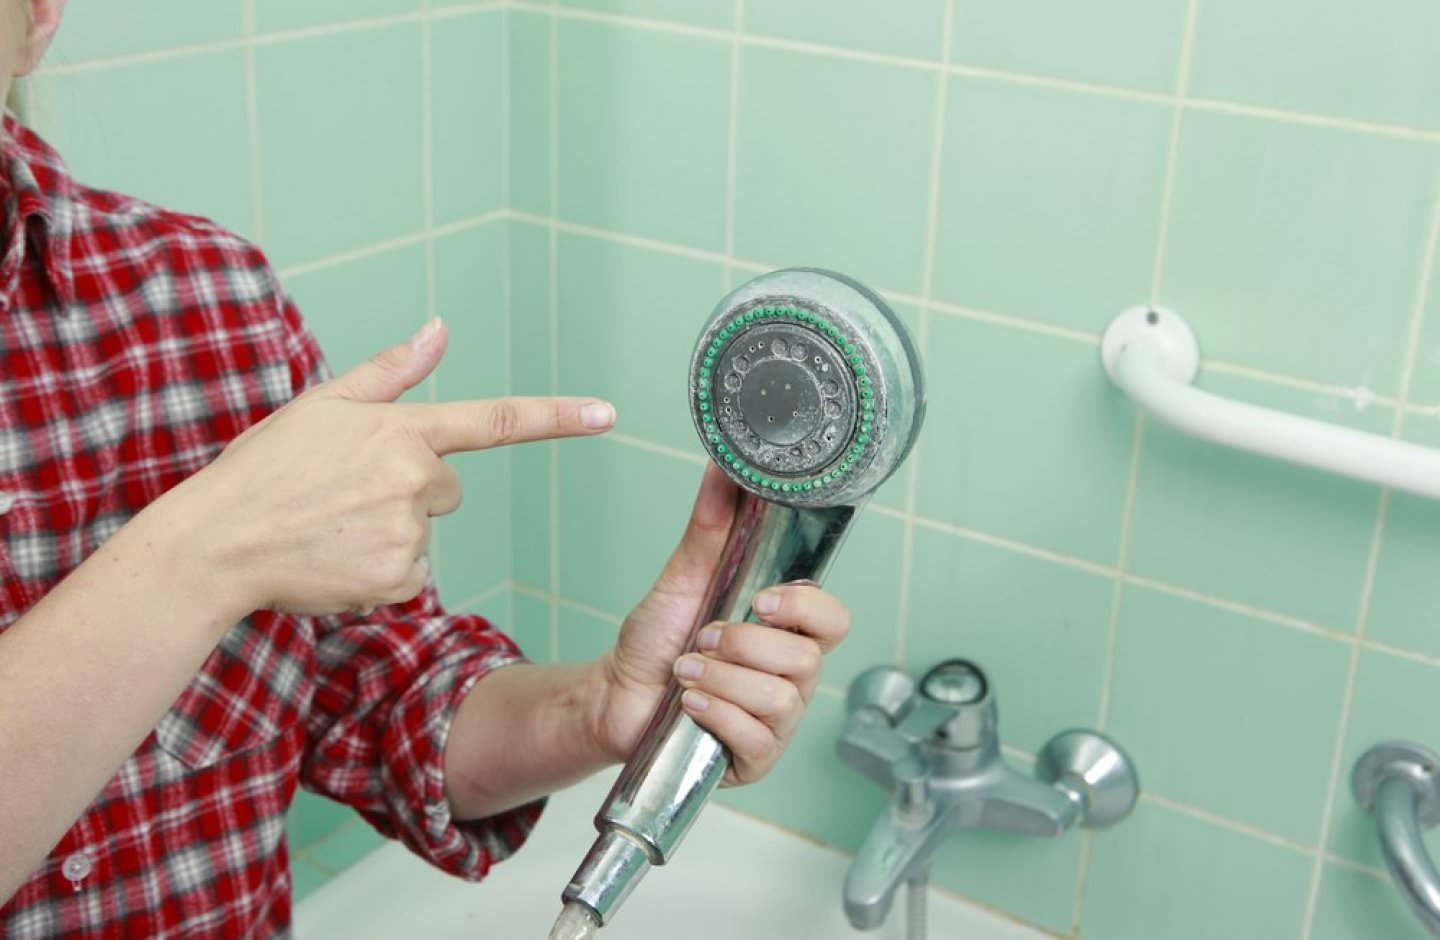 Affect of hard water on shower faucets in Florida homes